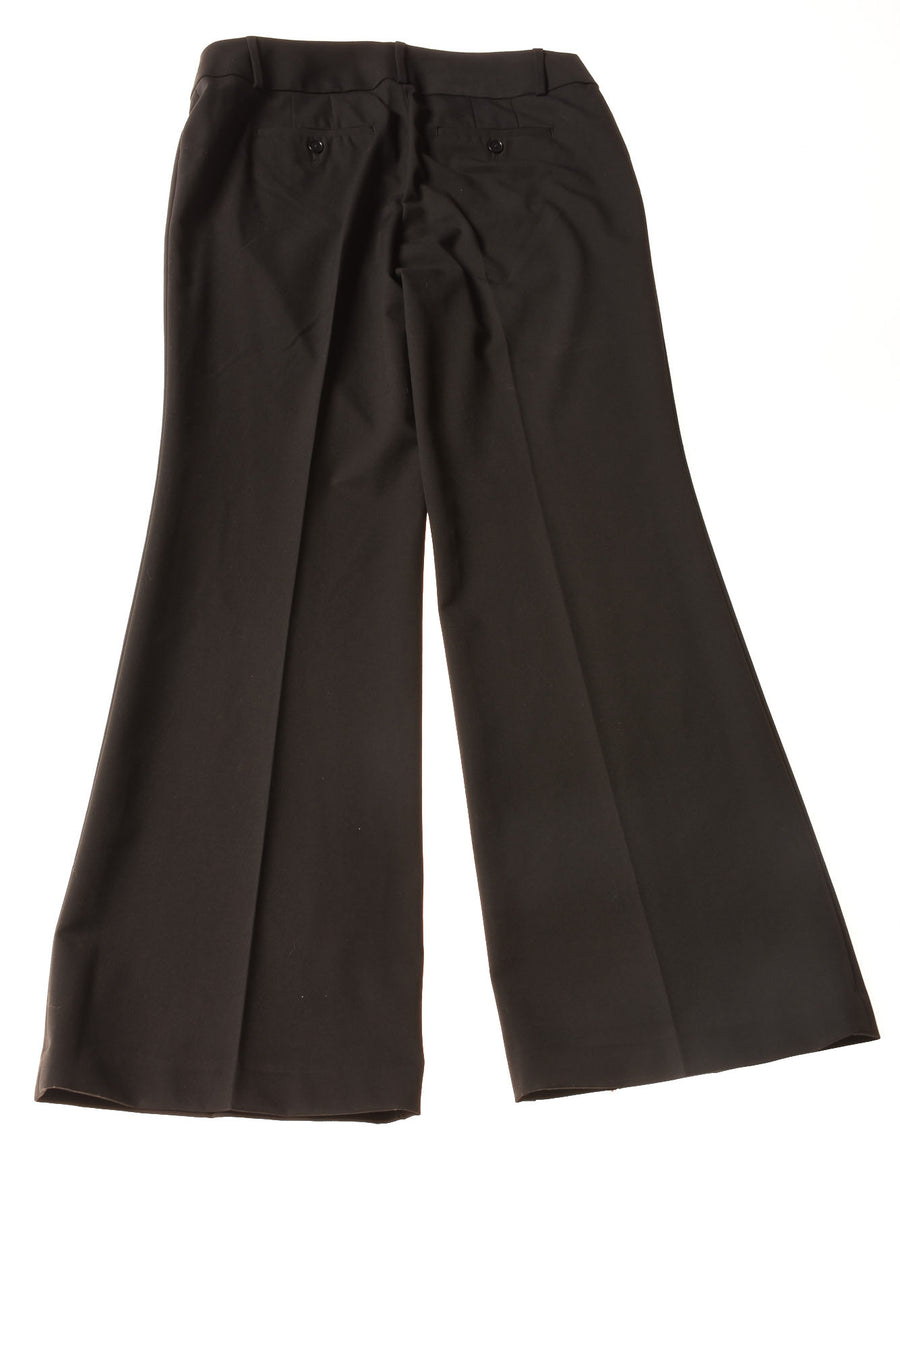 NEW Ann Taylor Loft Women's Slacks 8 Black